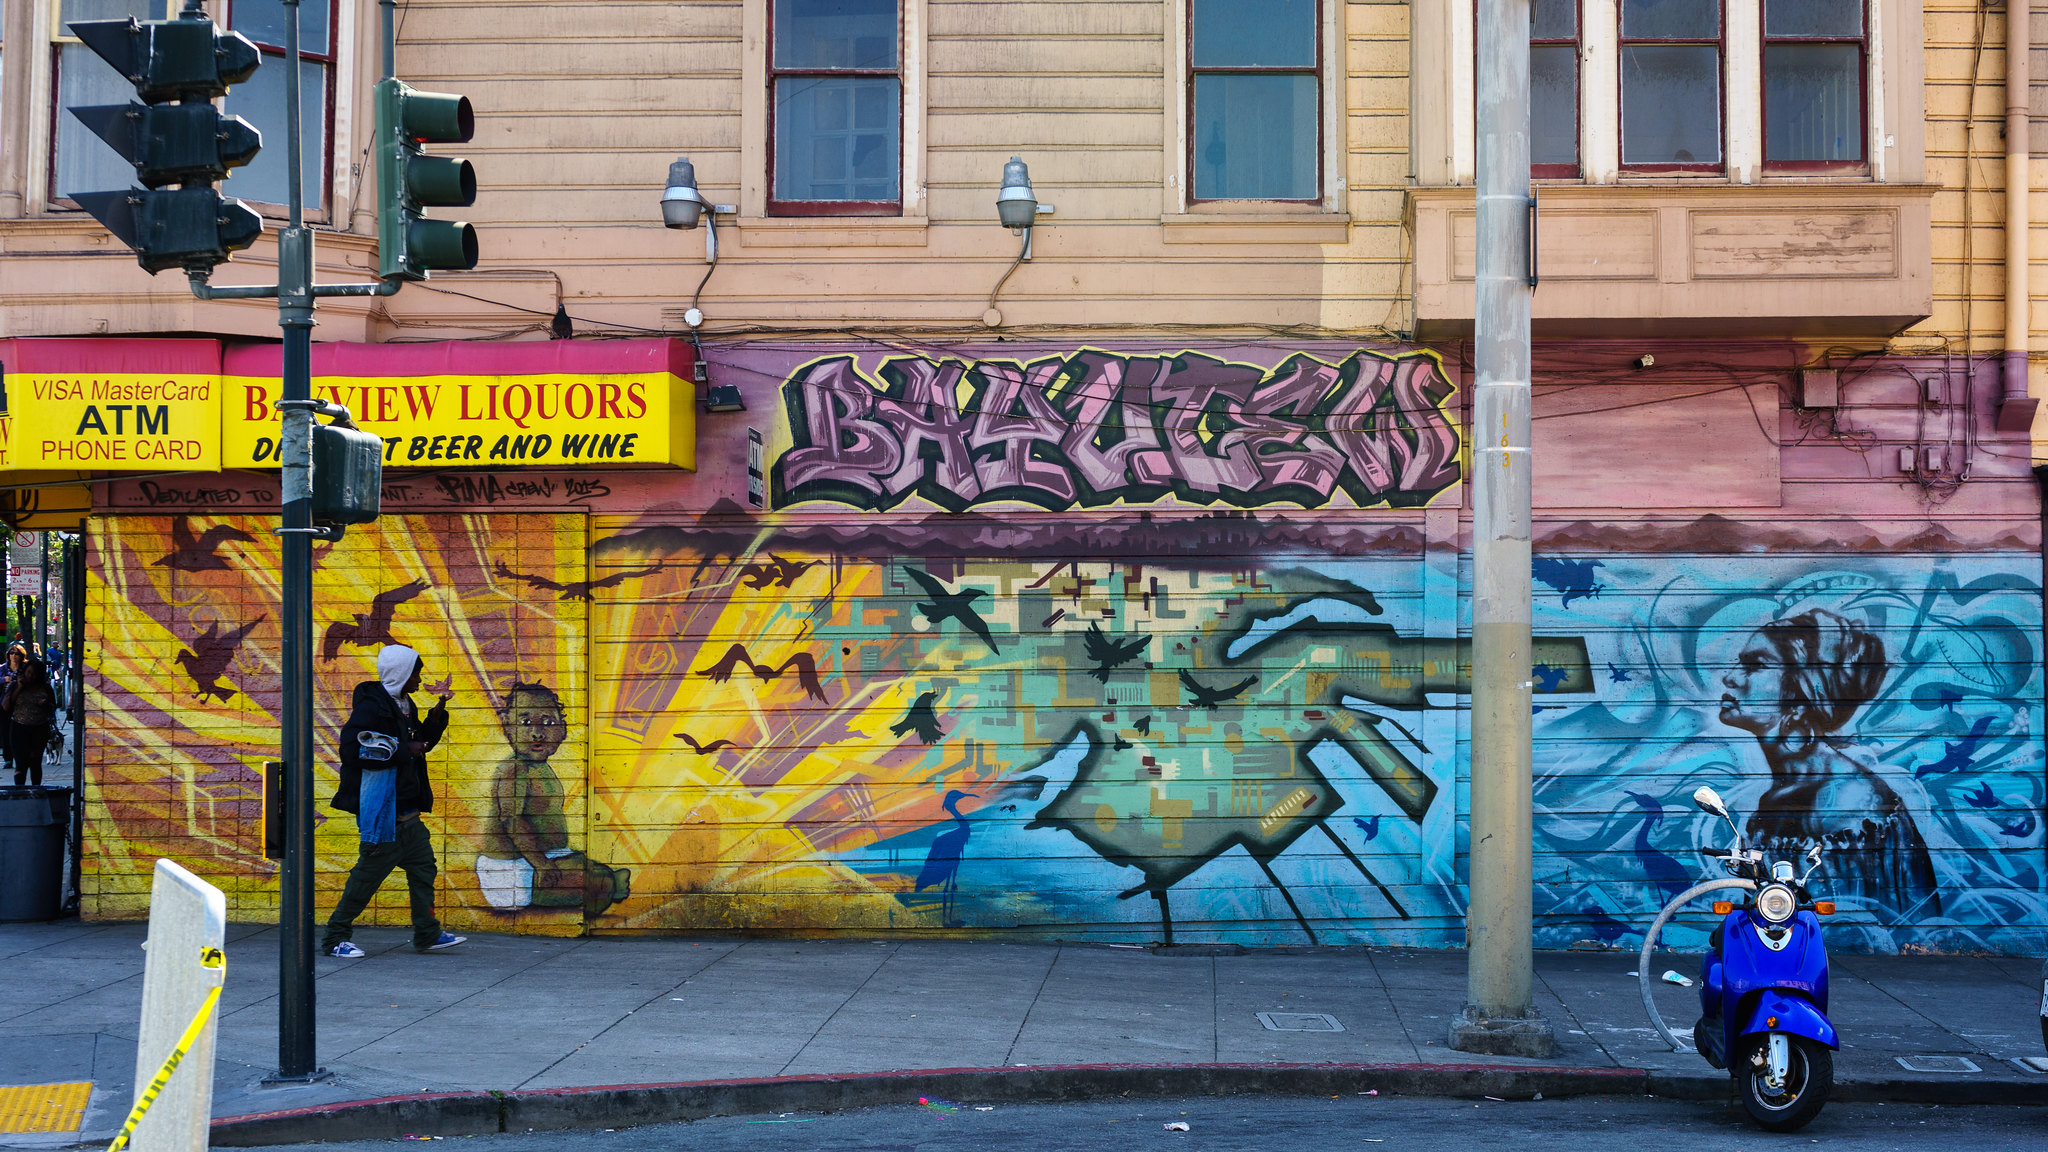 Black man in a hoodie carrying jeans walks past a mural outside a liquor store in San Francisco's Bayview neighborhood. Credit: Dale Cruse